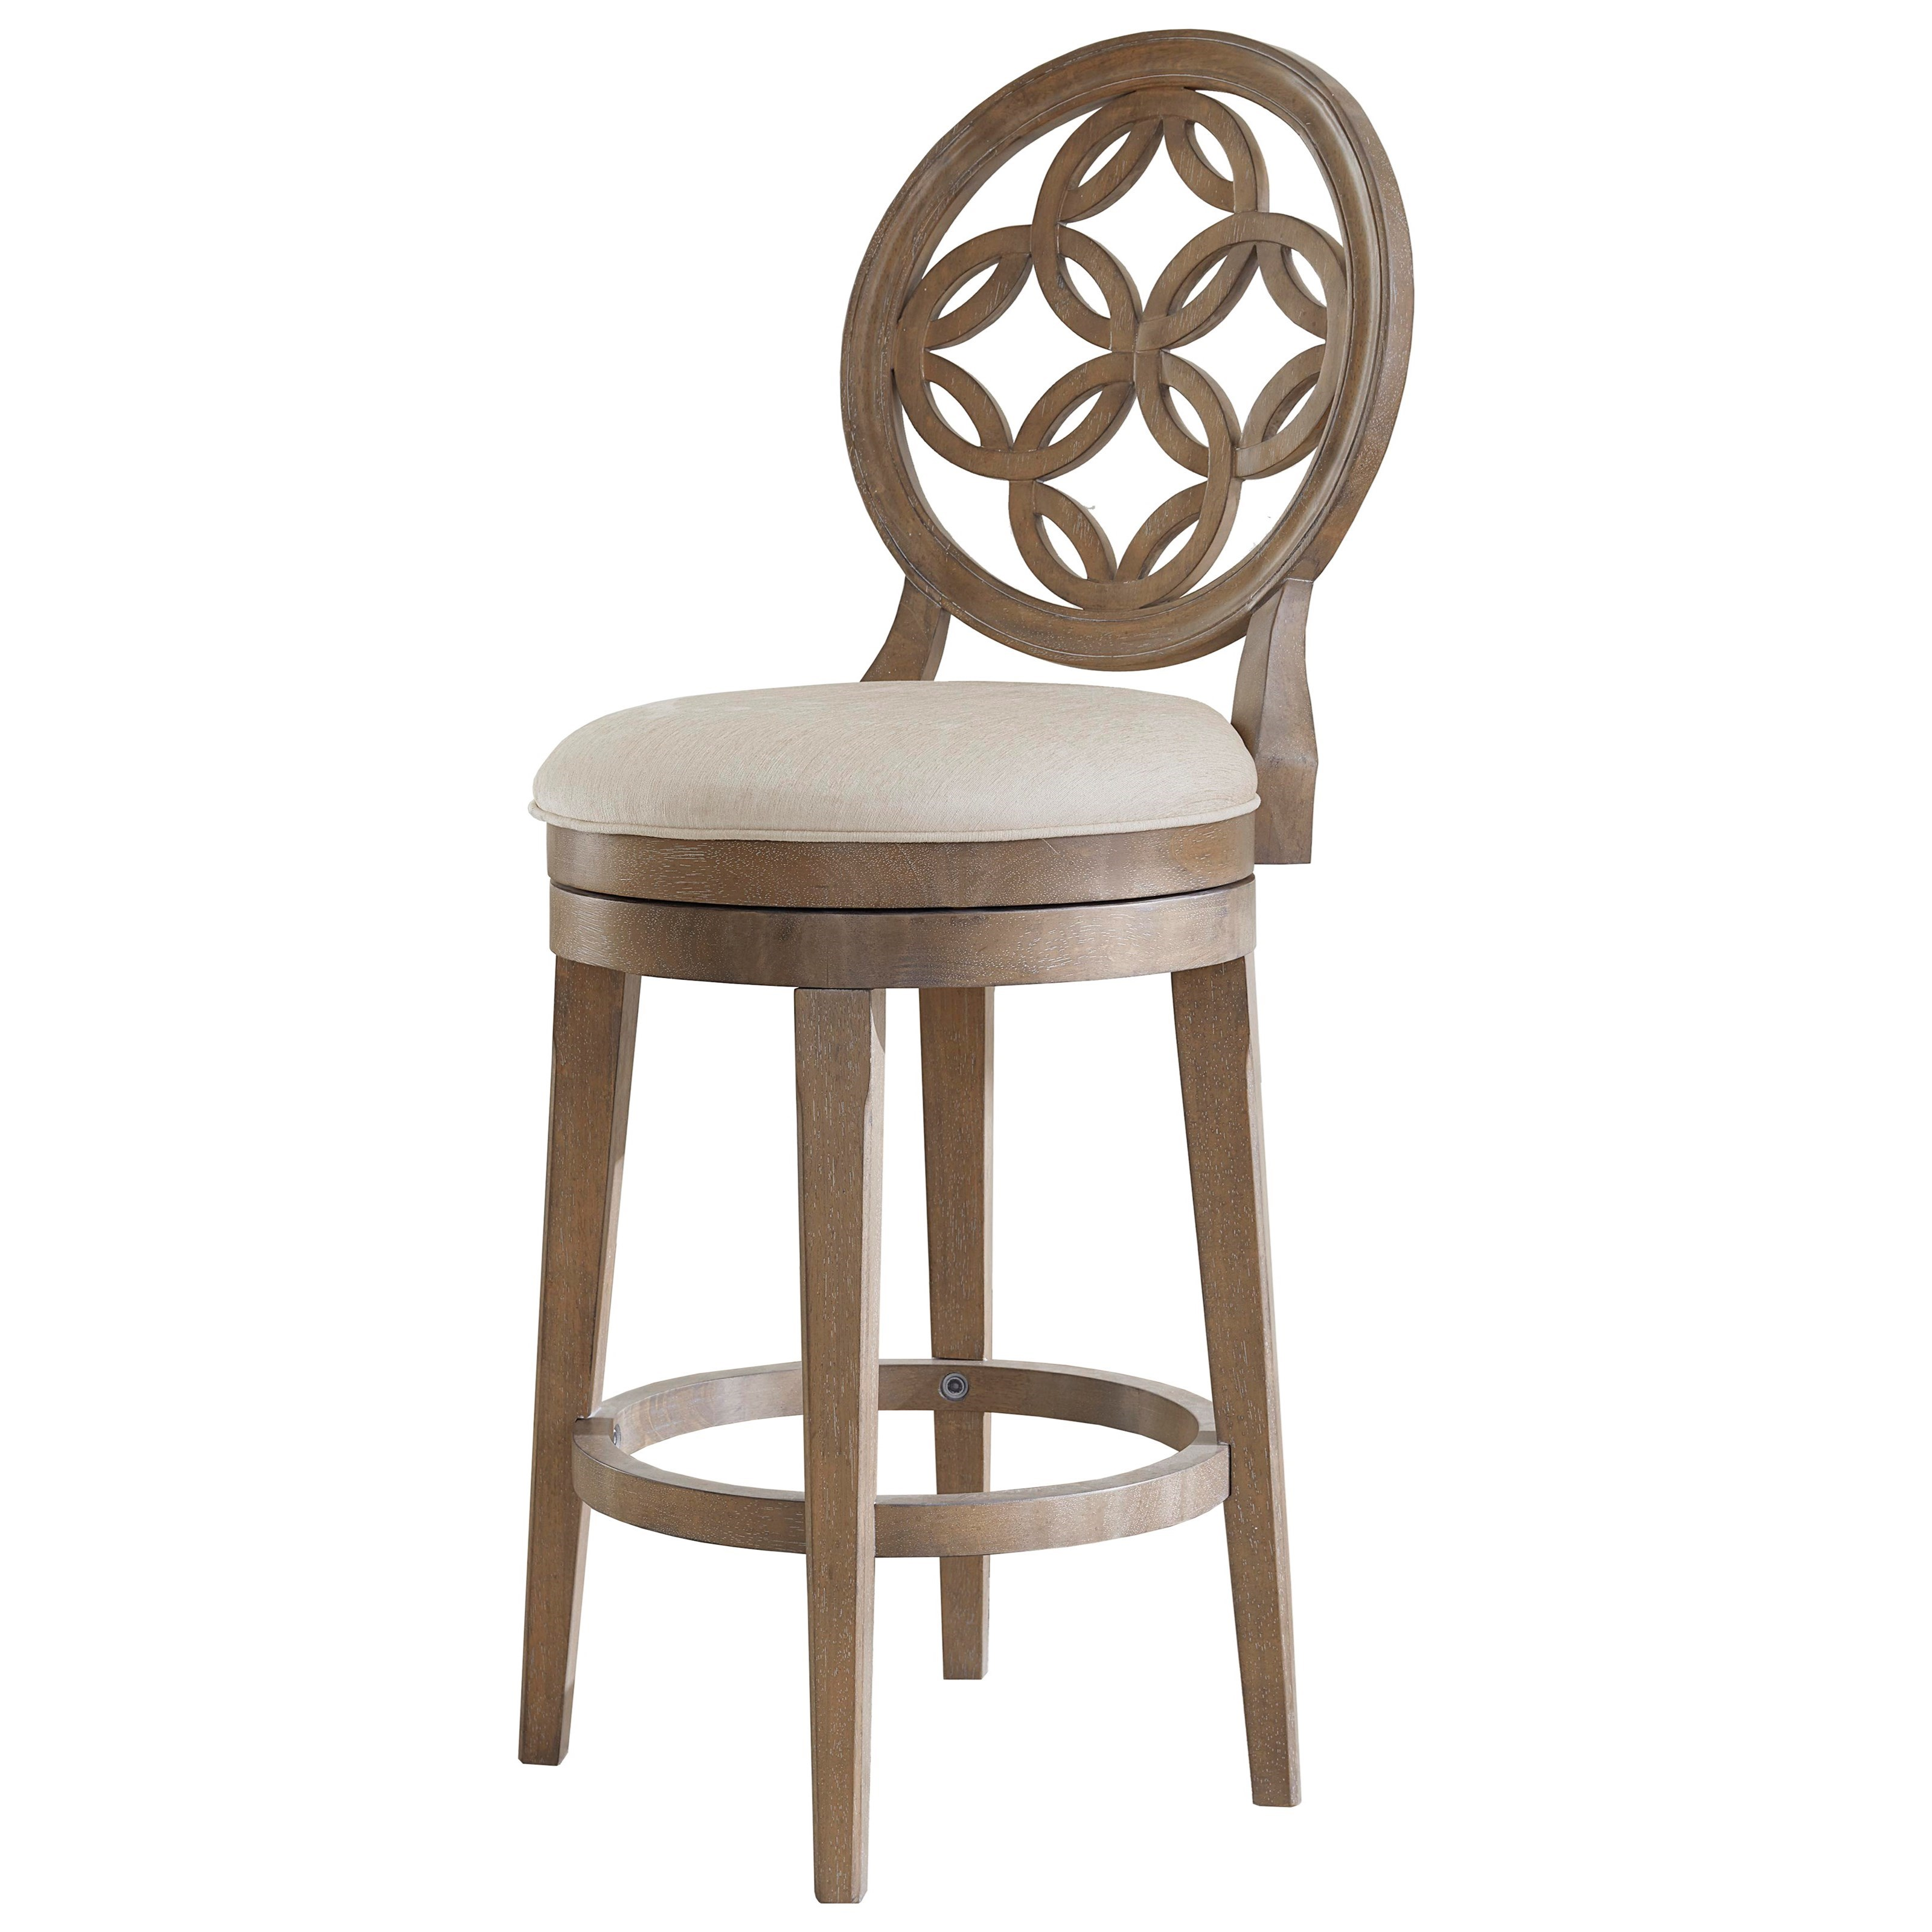 Wood Stools Swivel Counter Height Stool by Hillsdale at SuperStore